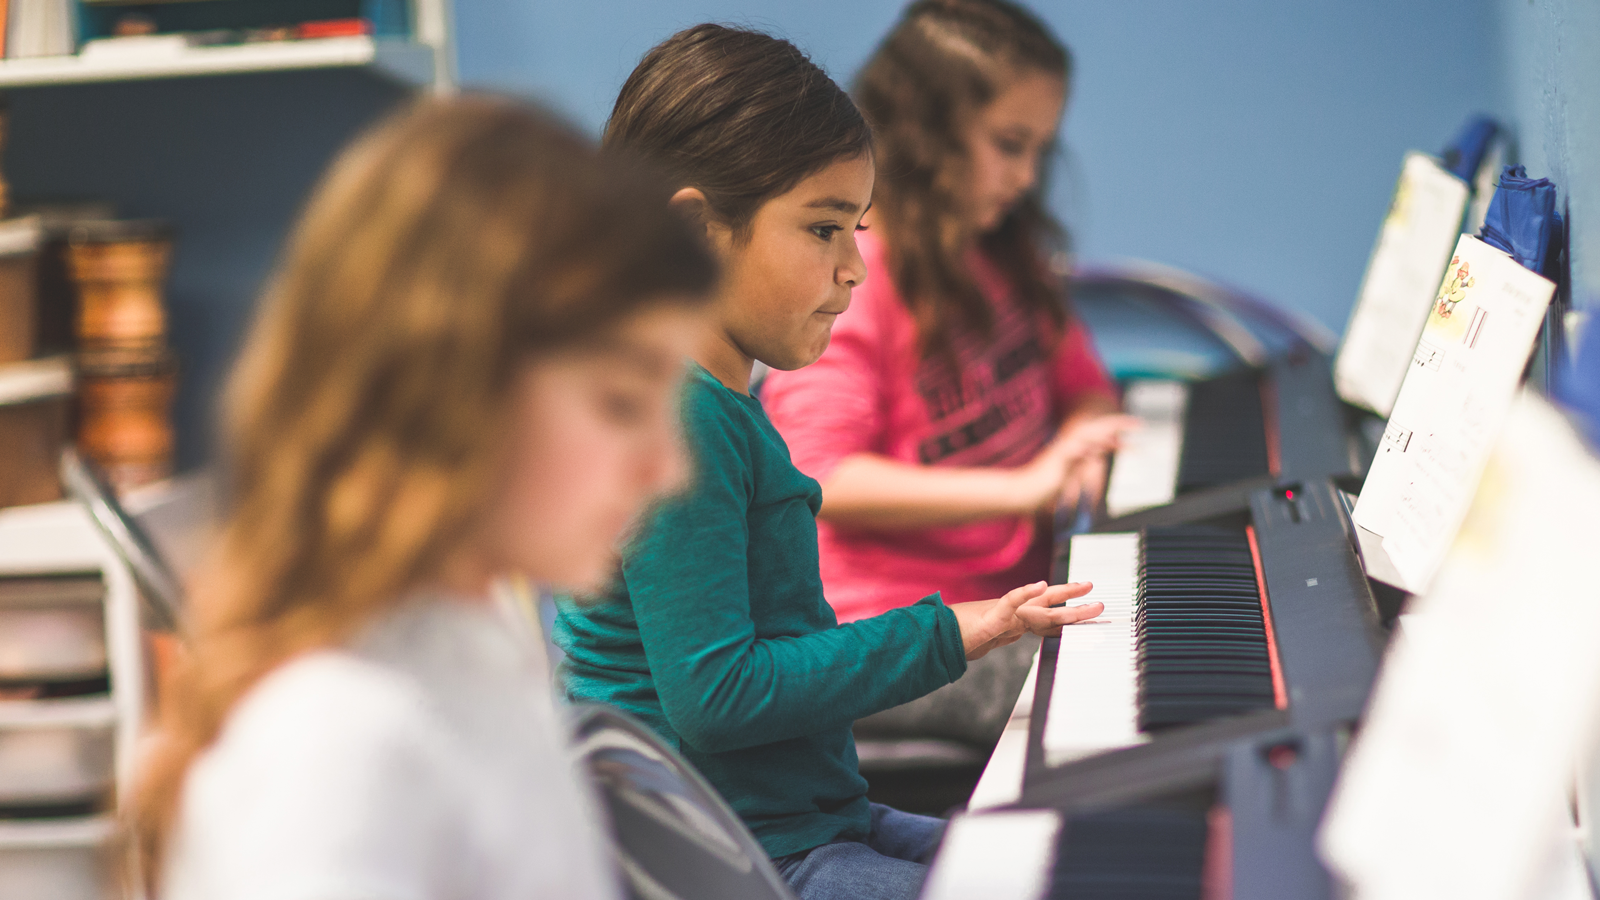 Small group Piano Classes - Monday session: 9am or 11:30am taught weeklyTuesday session: 9am or 11:30am taught weeklyHour long group piano classes limited to 3 students per class.Small classes means more focused instruction!Providing individual and group attention in each class.Piano Maestro Subscription (iPad app) included with class!Grouped by age (5-6 yrs) (7-9 yrs) (10-14 yrs)Opportunity to perform in school recital in DecemberCost $100 per month per student (Weekly 1 hour classes each month)$20 deposit to reserve space for your student.